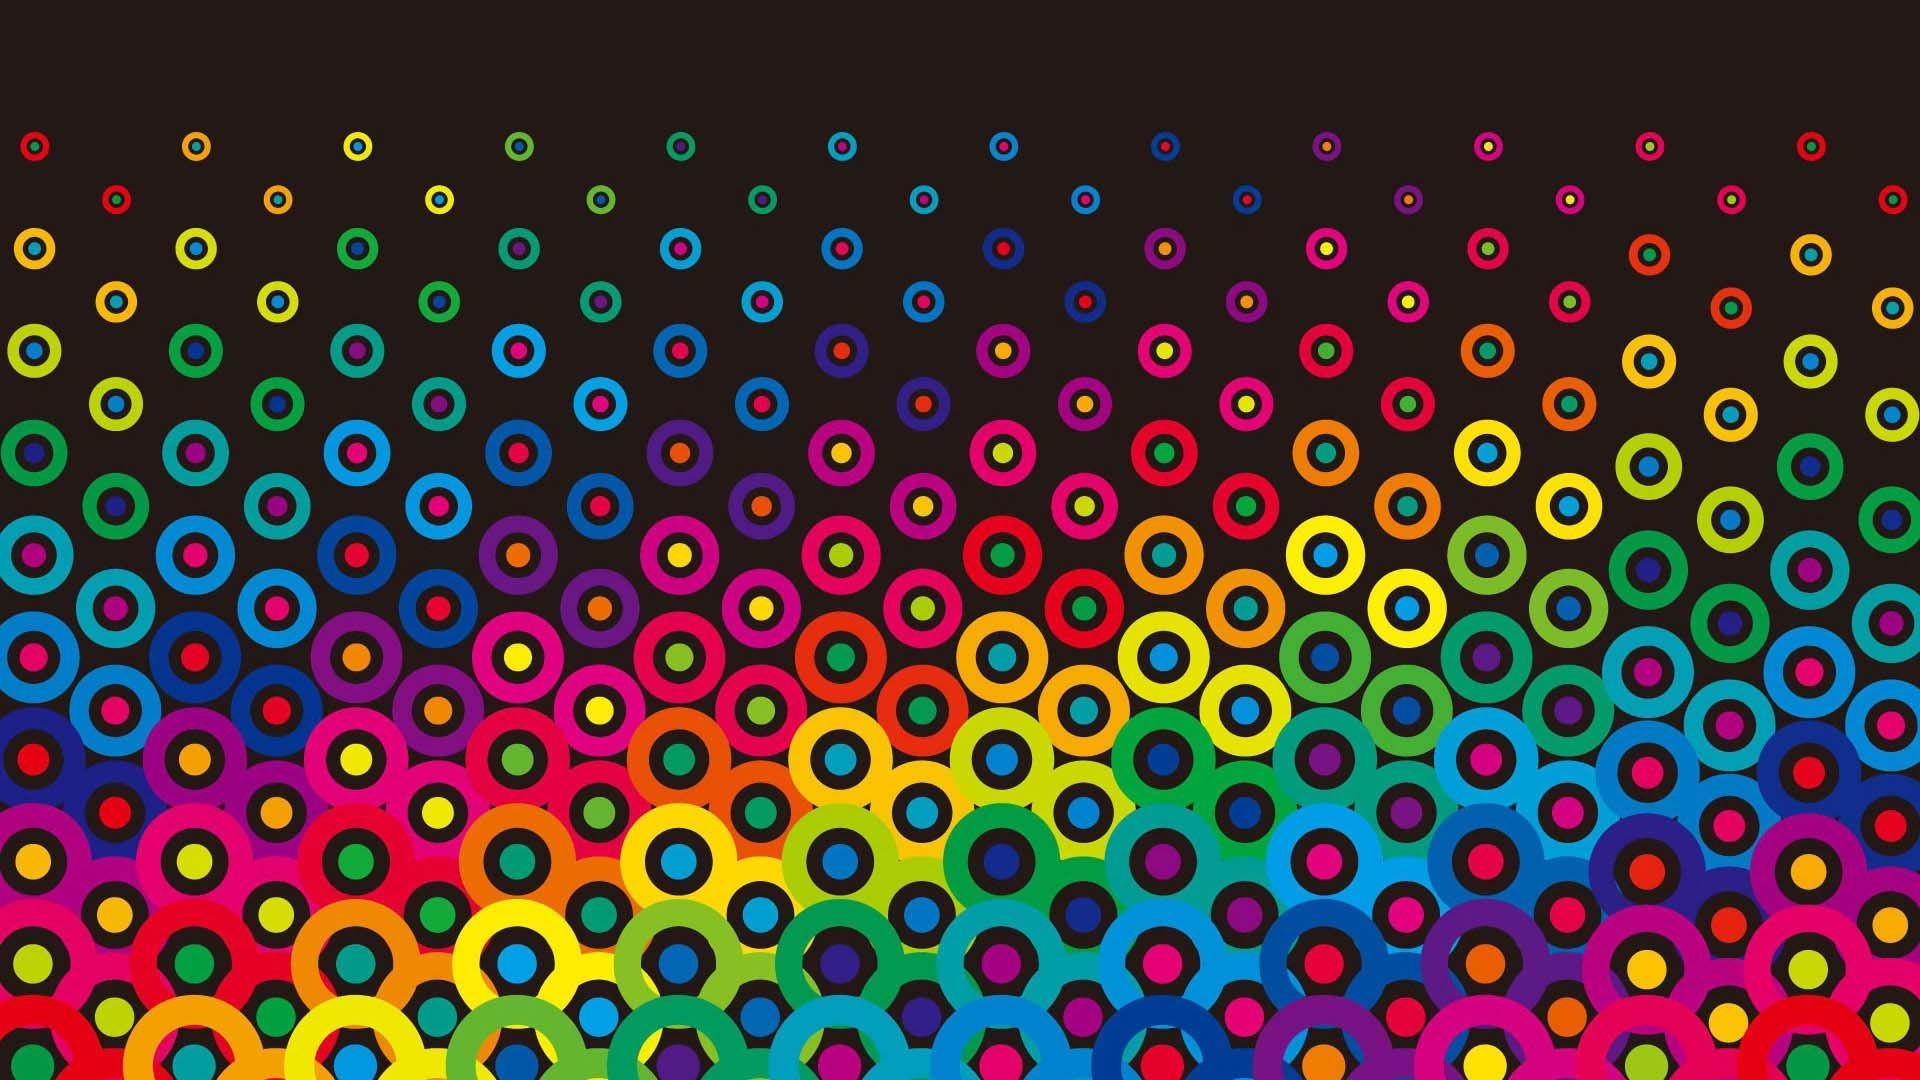 Res: 1920x1080, Colorful Retro Circles | HD 3D and Abstract Wallpaper Free Download ...